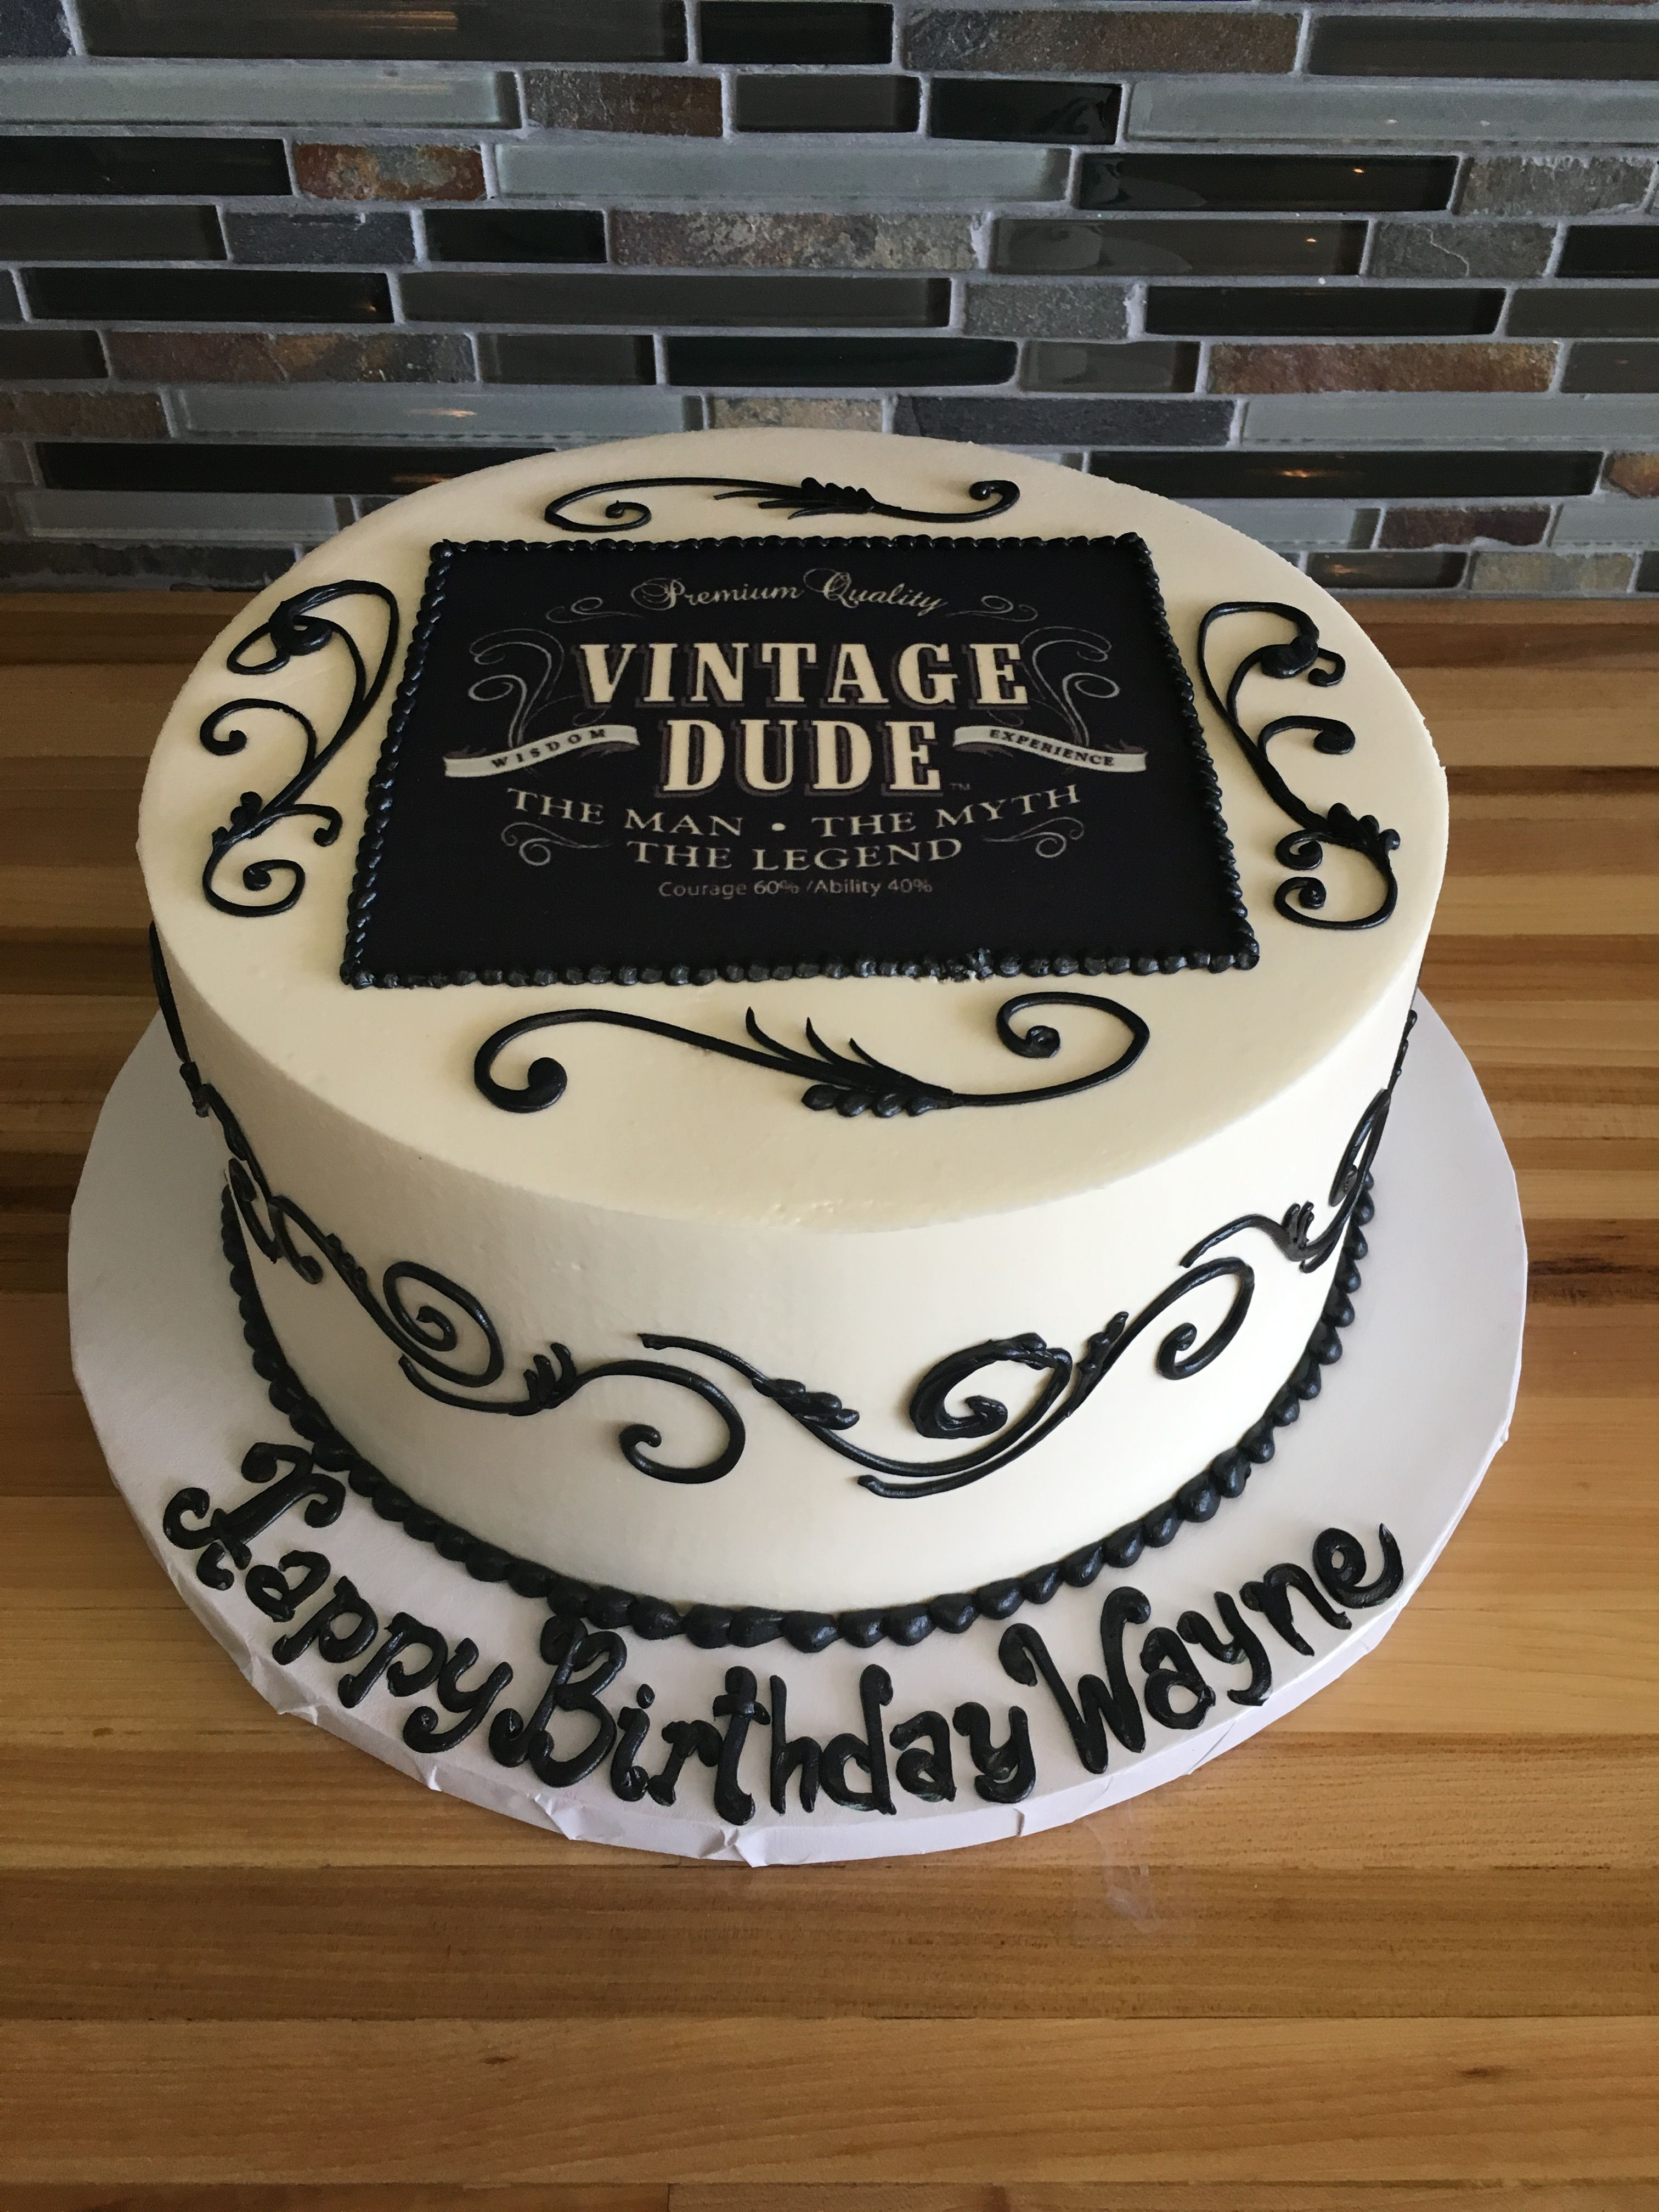 Vintage Dude Birthday Cake Scroll Work Also Excellent Picture Of Mens Toppers Rh